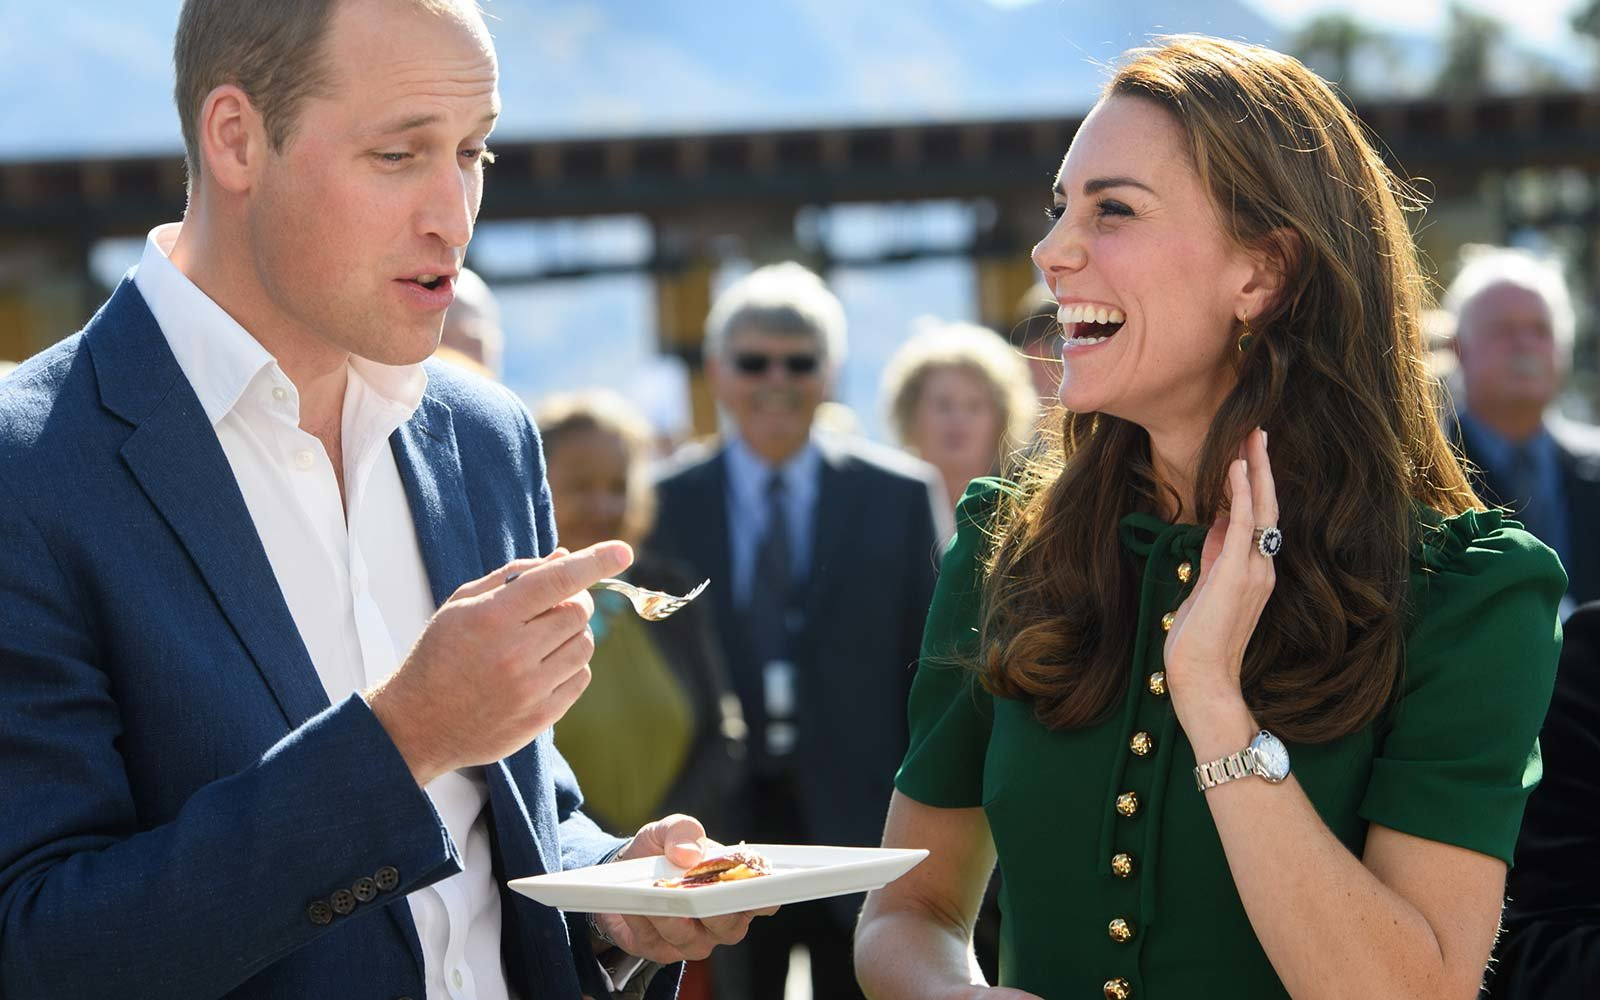 Prince William, Duke of Cambridge and Catherine, Duchess of Cambridge eat Indian food